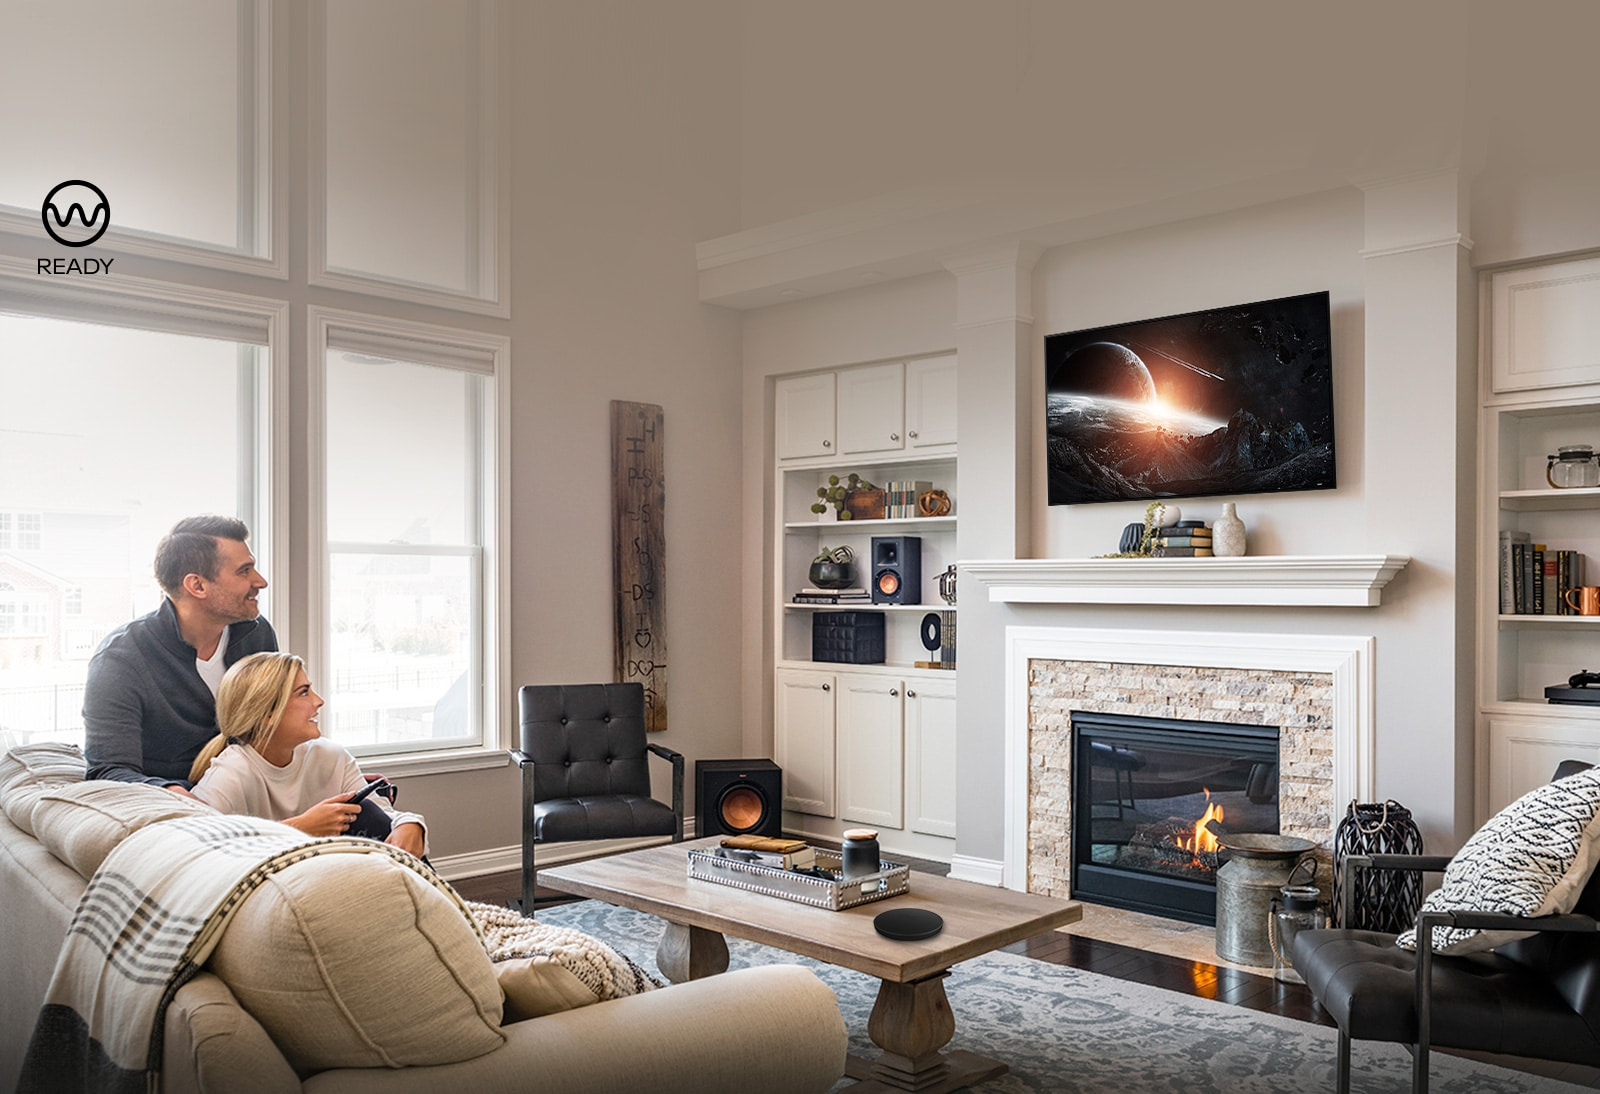 LG OLED TVs and WiSA™1